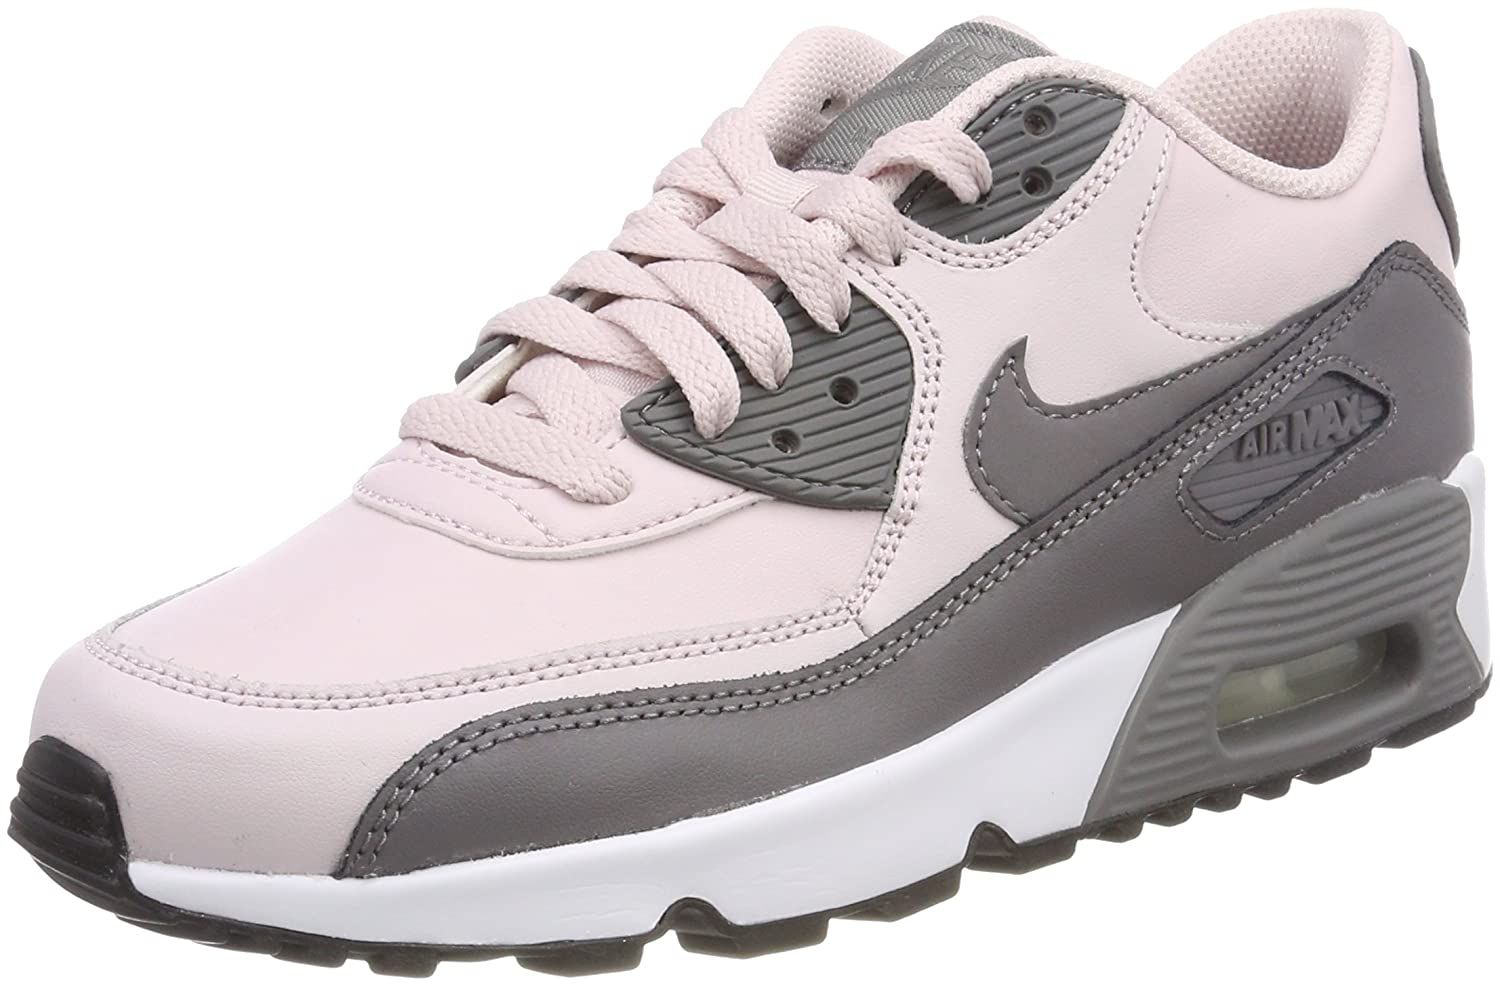 best service 1babb a93fc Amazon.com   Nike Air Max 90 Leather (Kids)   Shoes